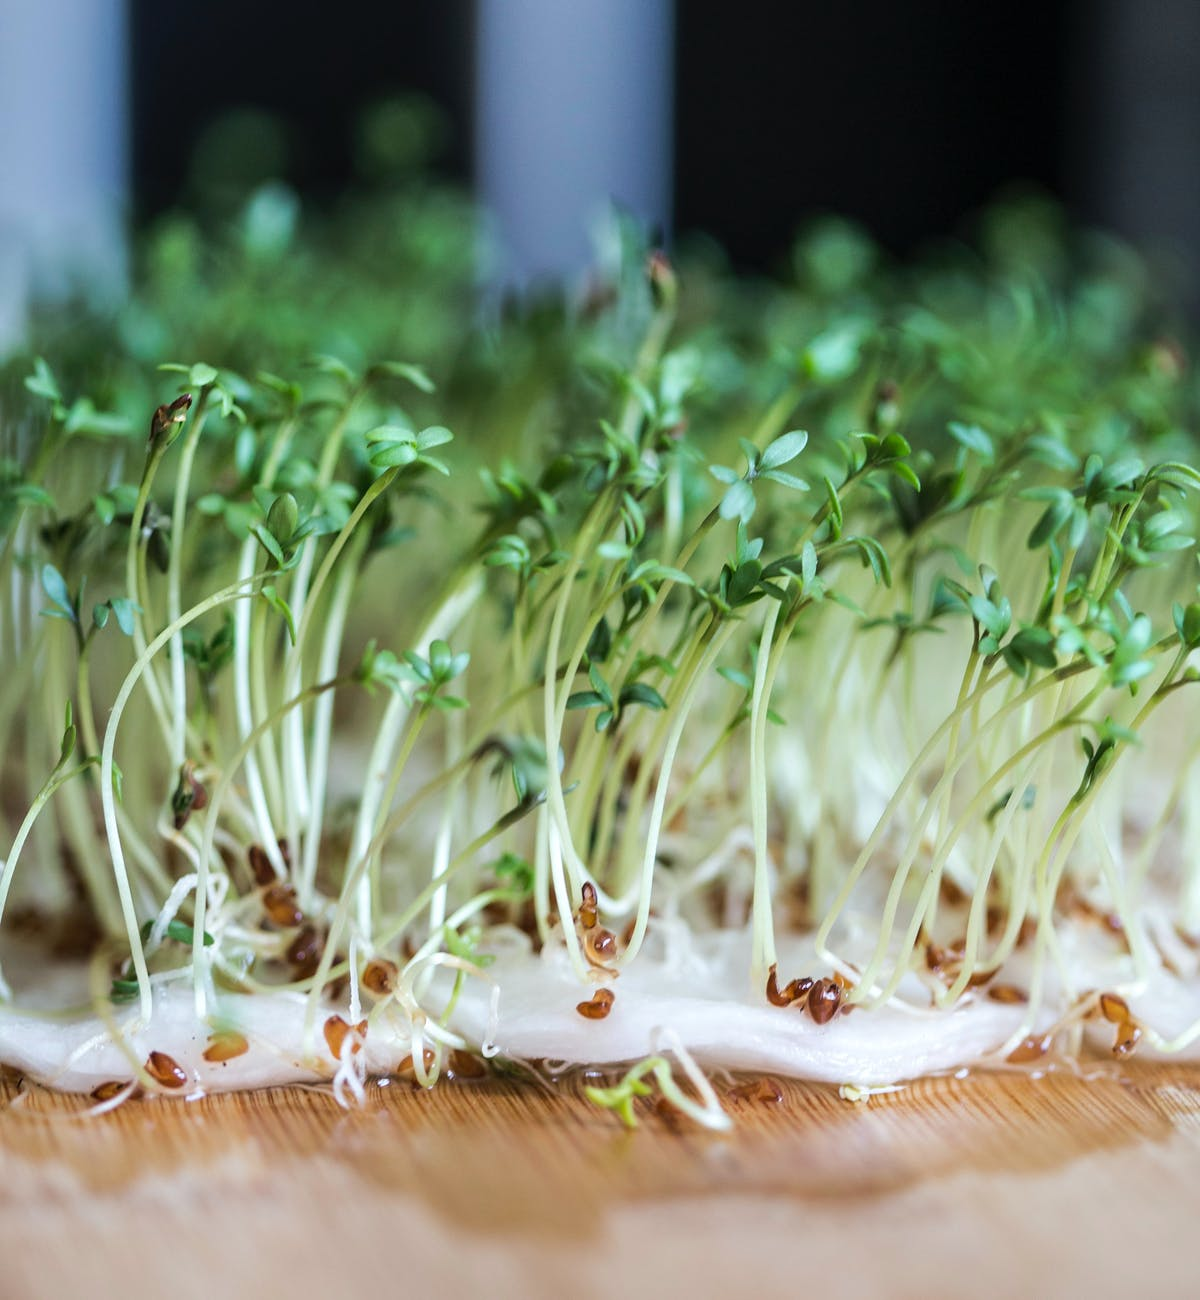 Water Cress Plant